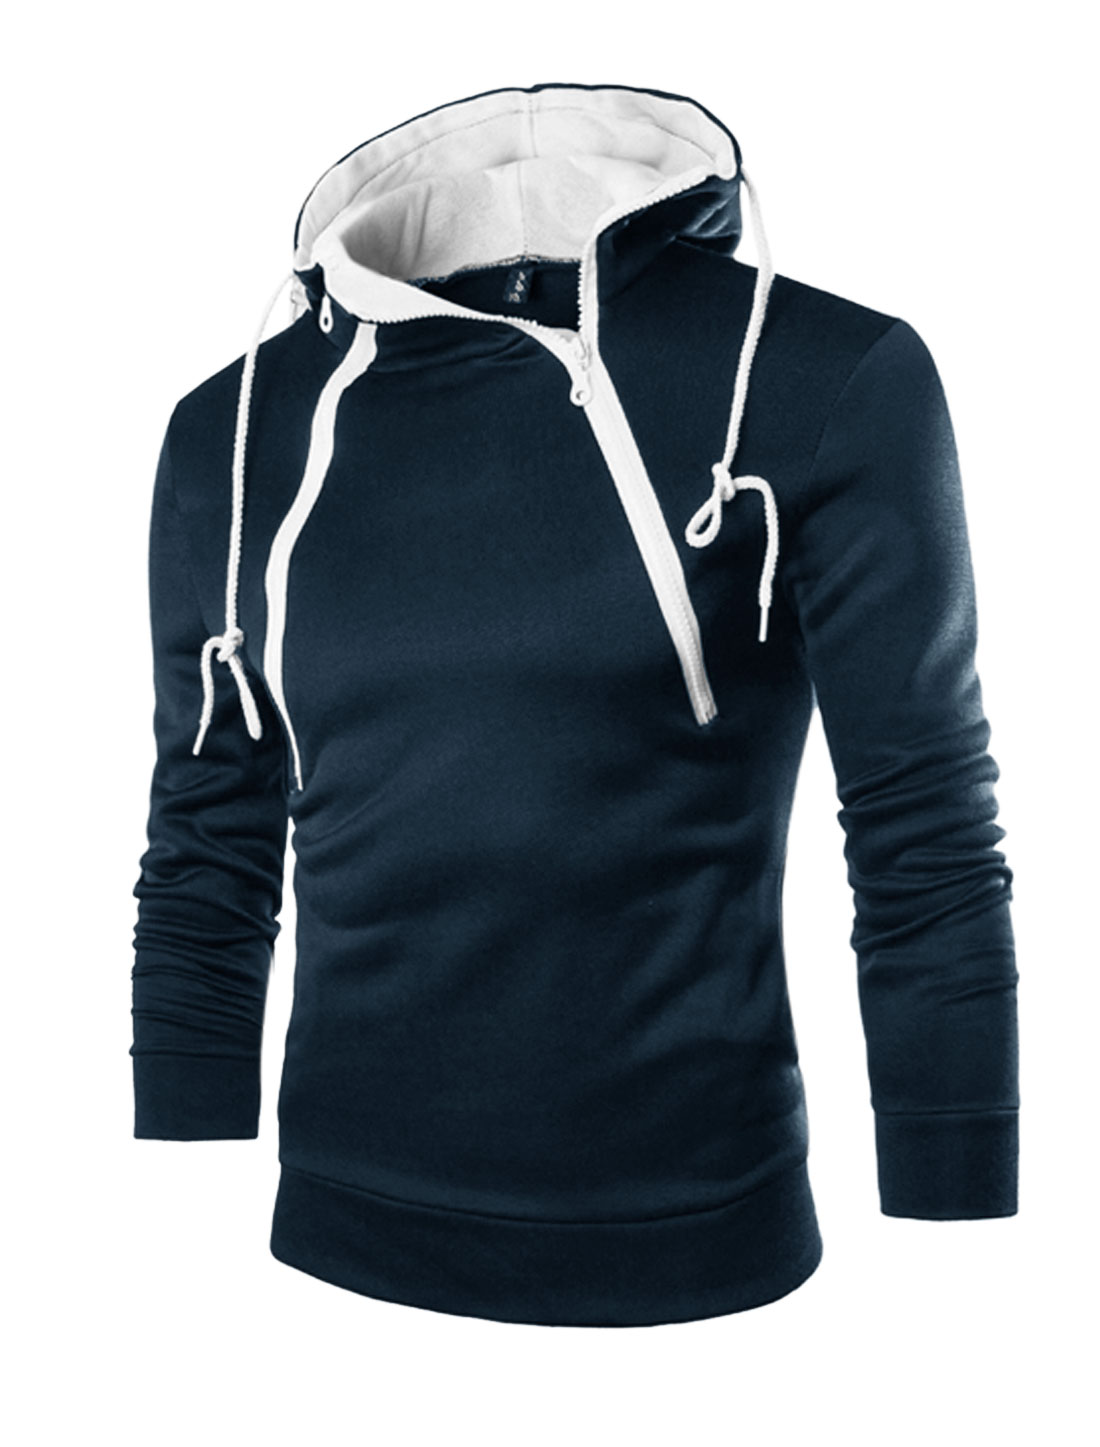 Men Inclined Zippers Upper Long Sleeves Soft Lined Hoodie Navy Blue M